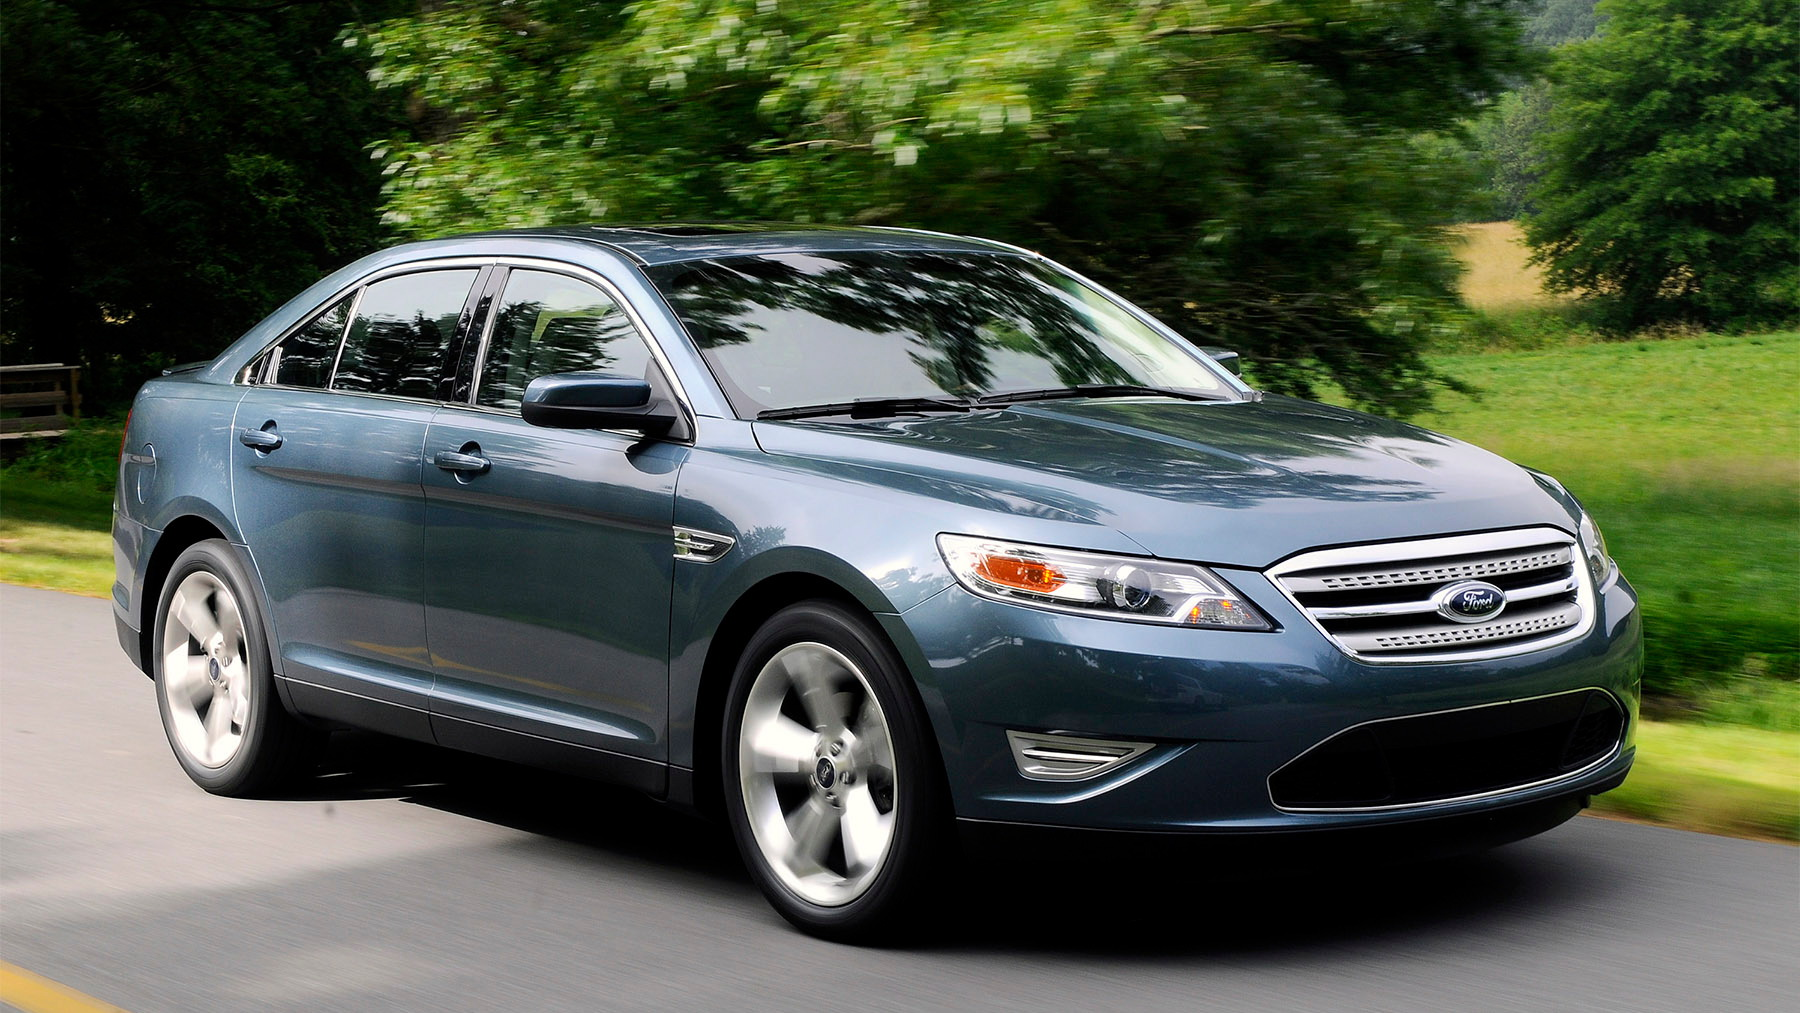 2010 ford taurus sho photo update june 2009 005